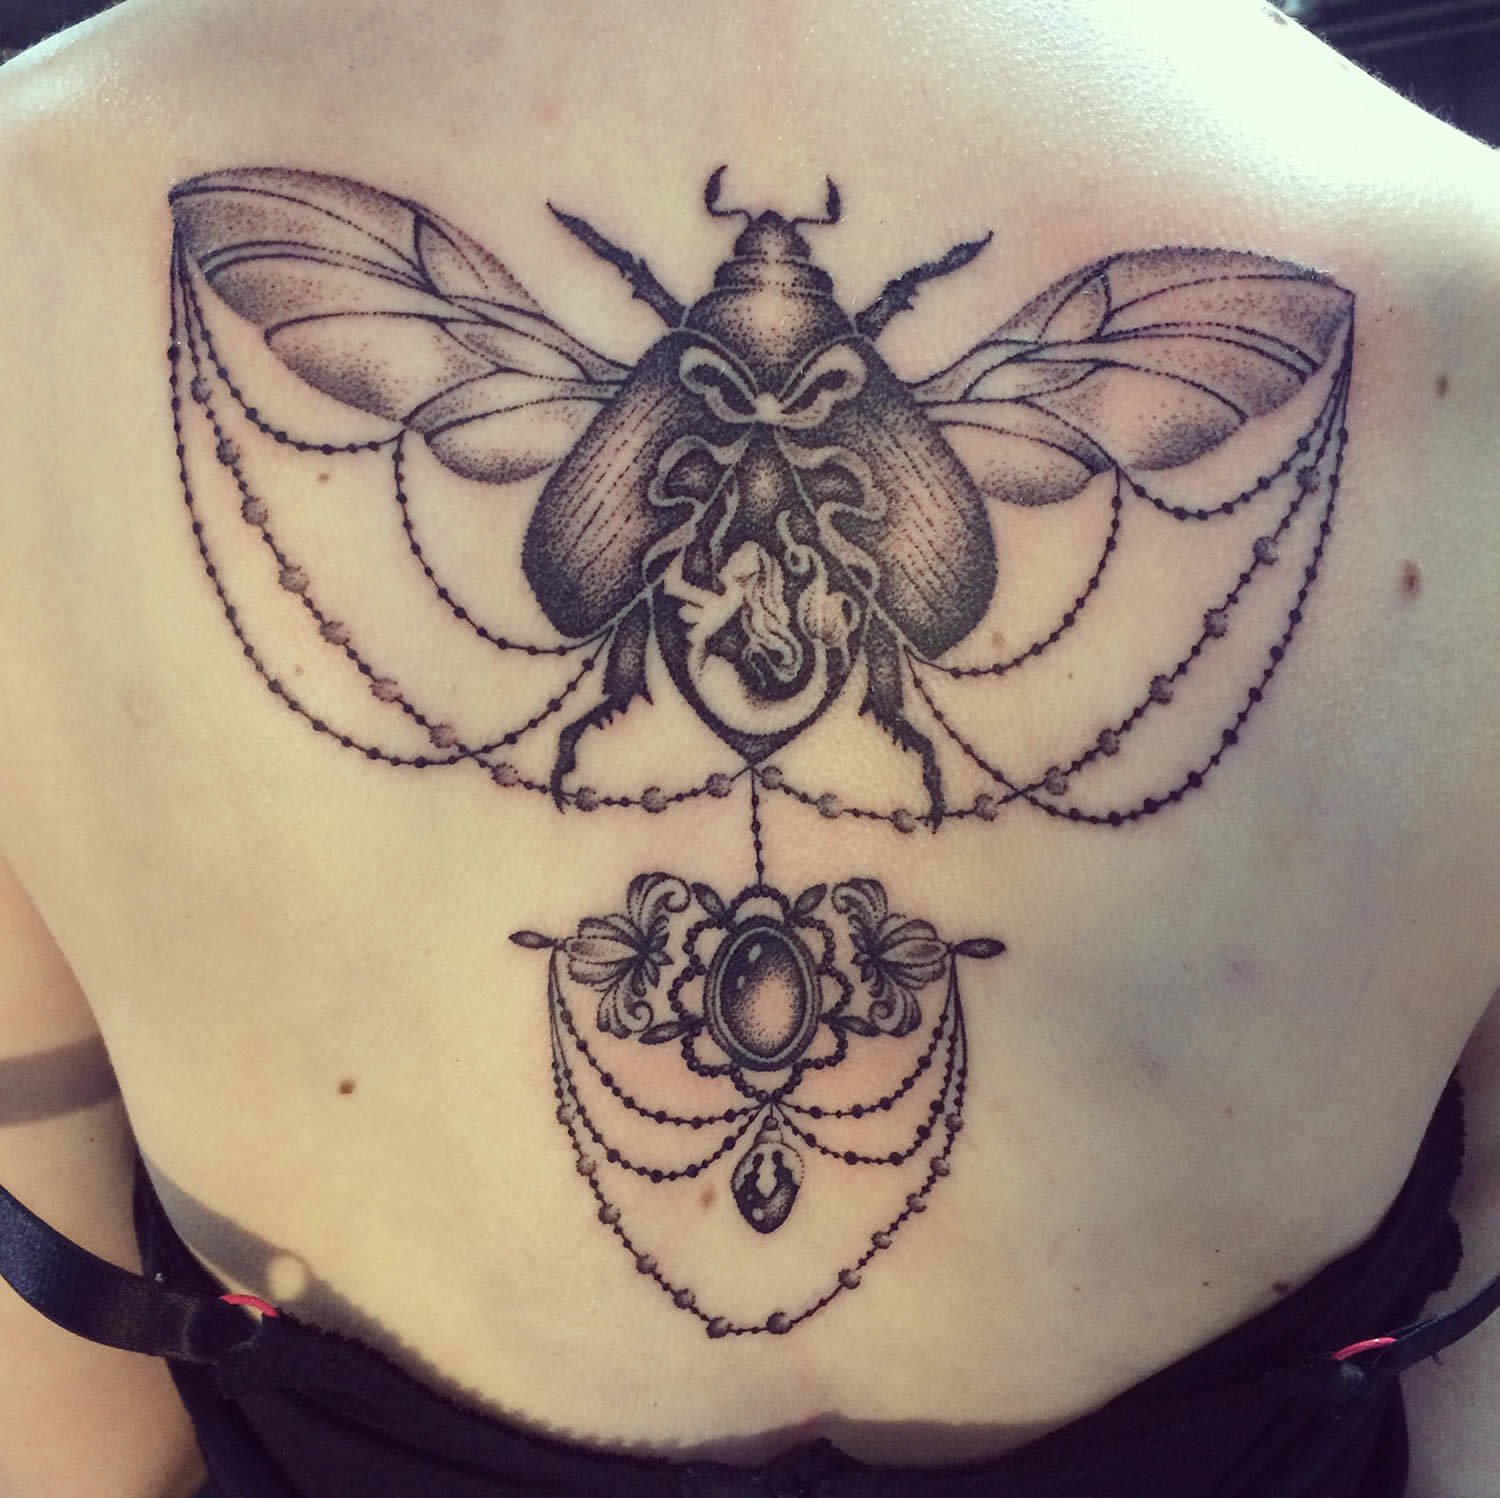 insect and victorian jewelry tattoo on back